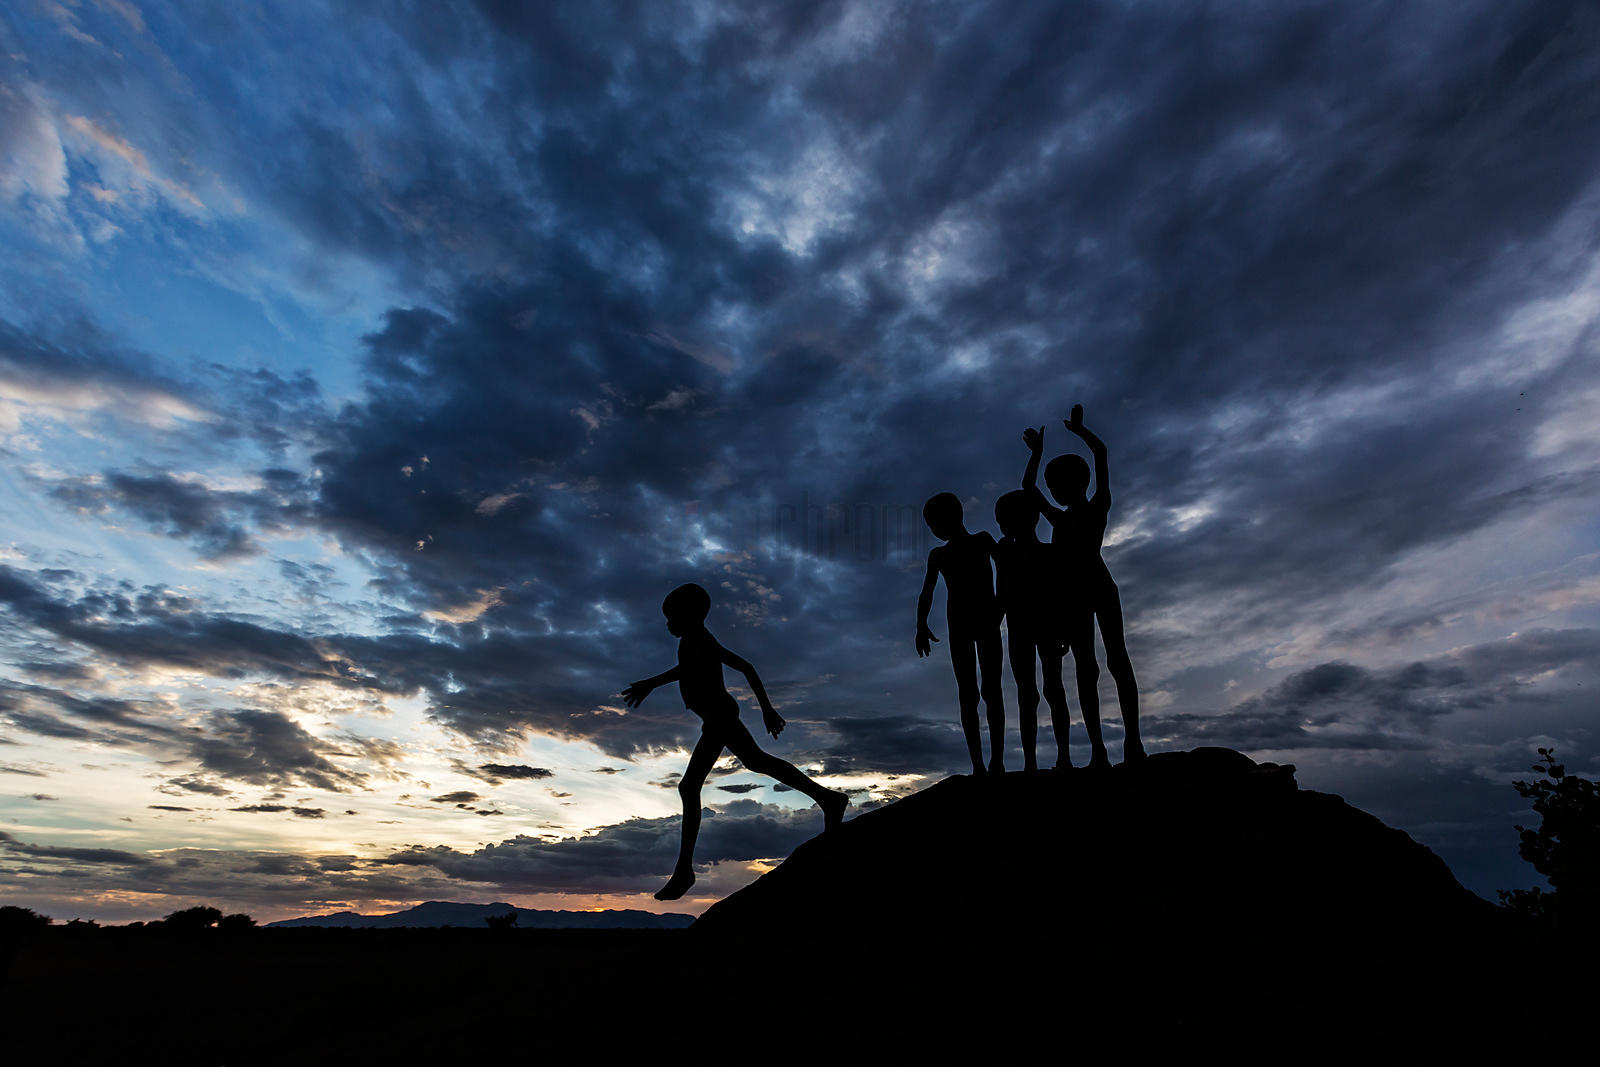 Silhouette of African Boys on an Anthill